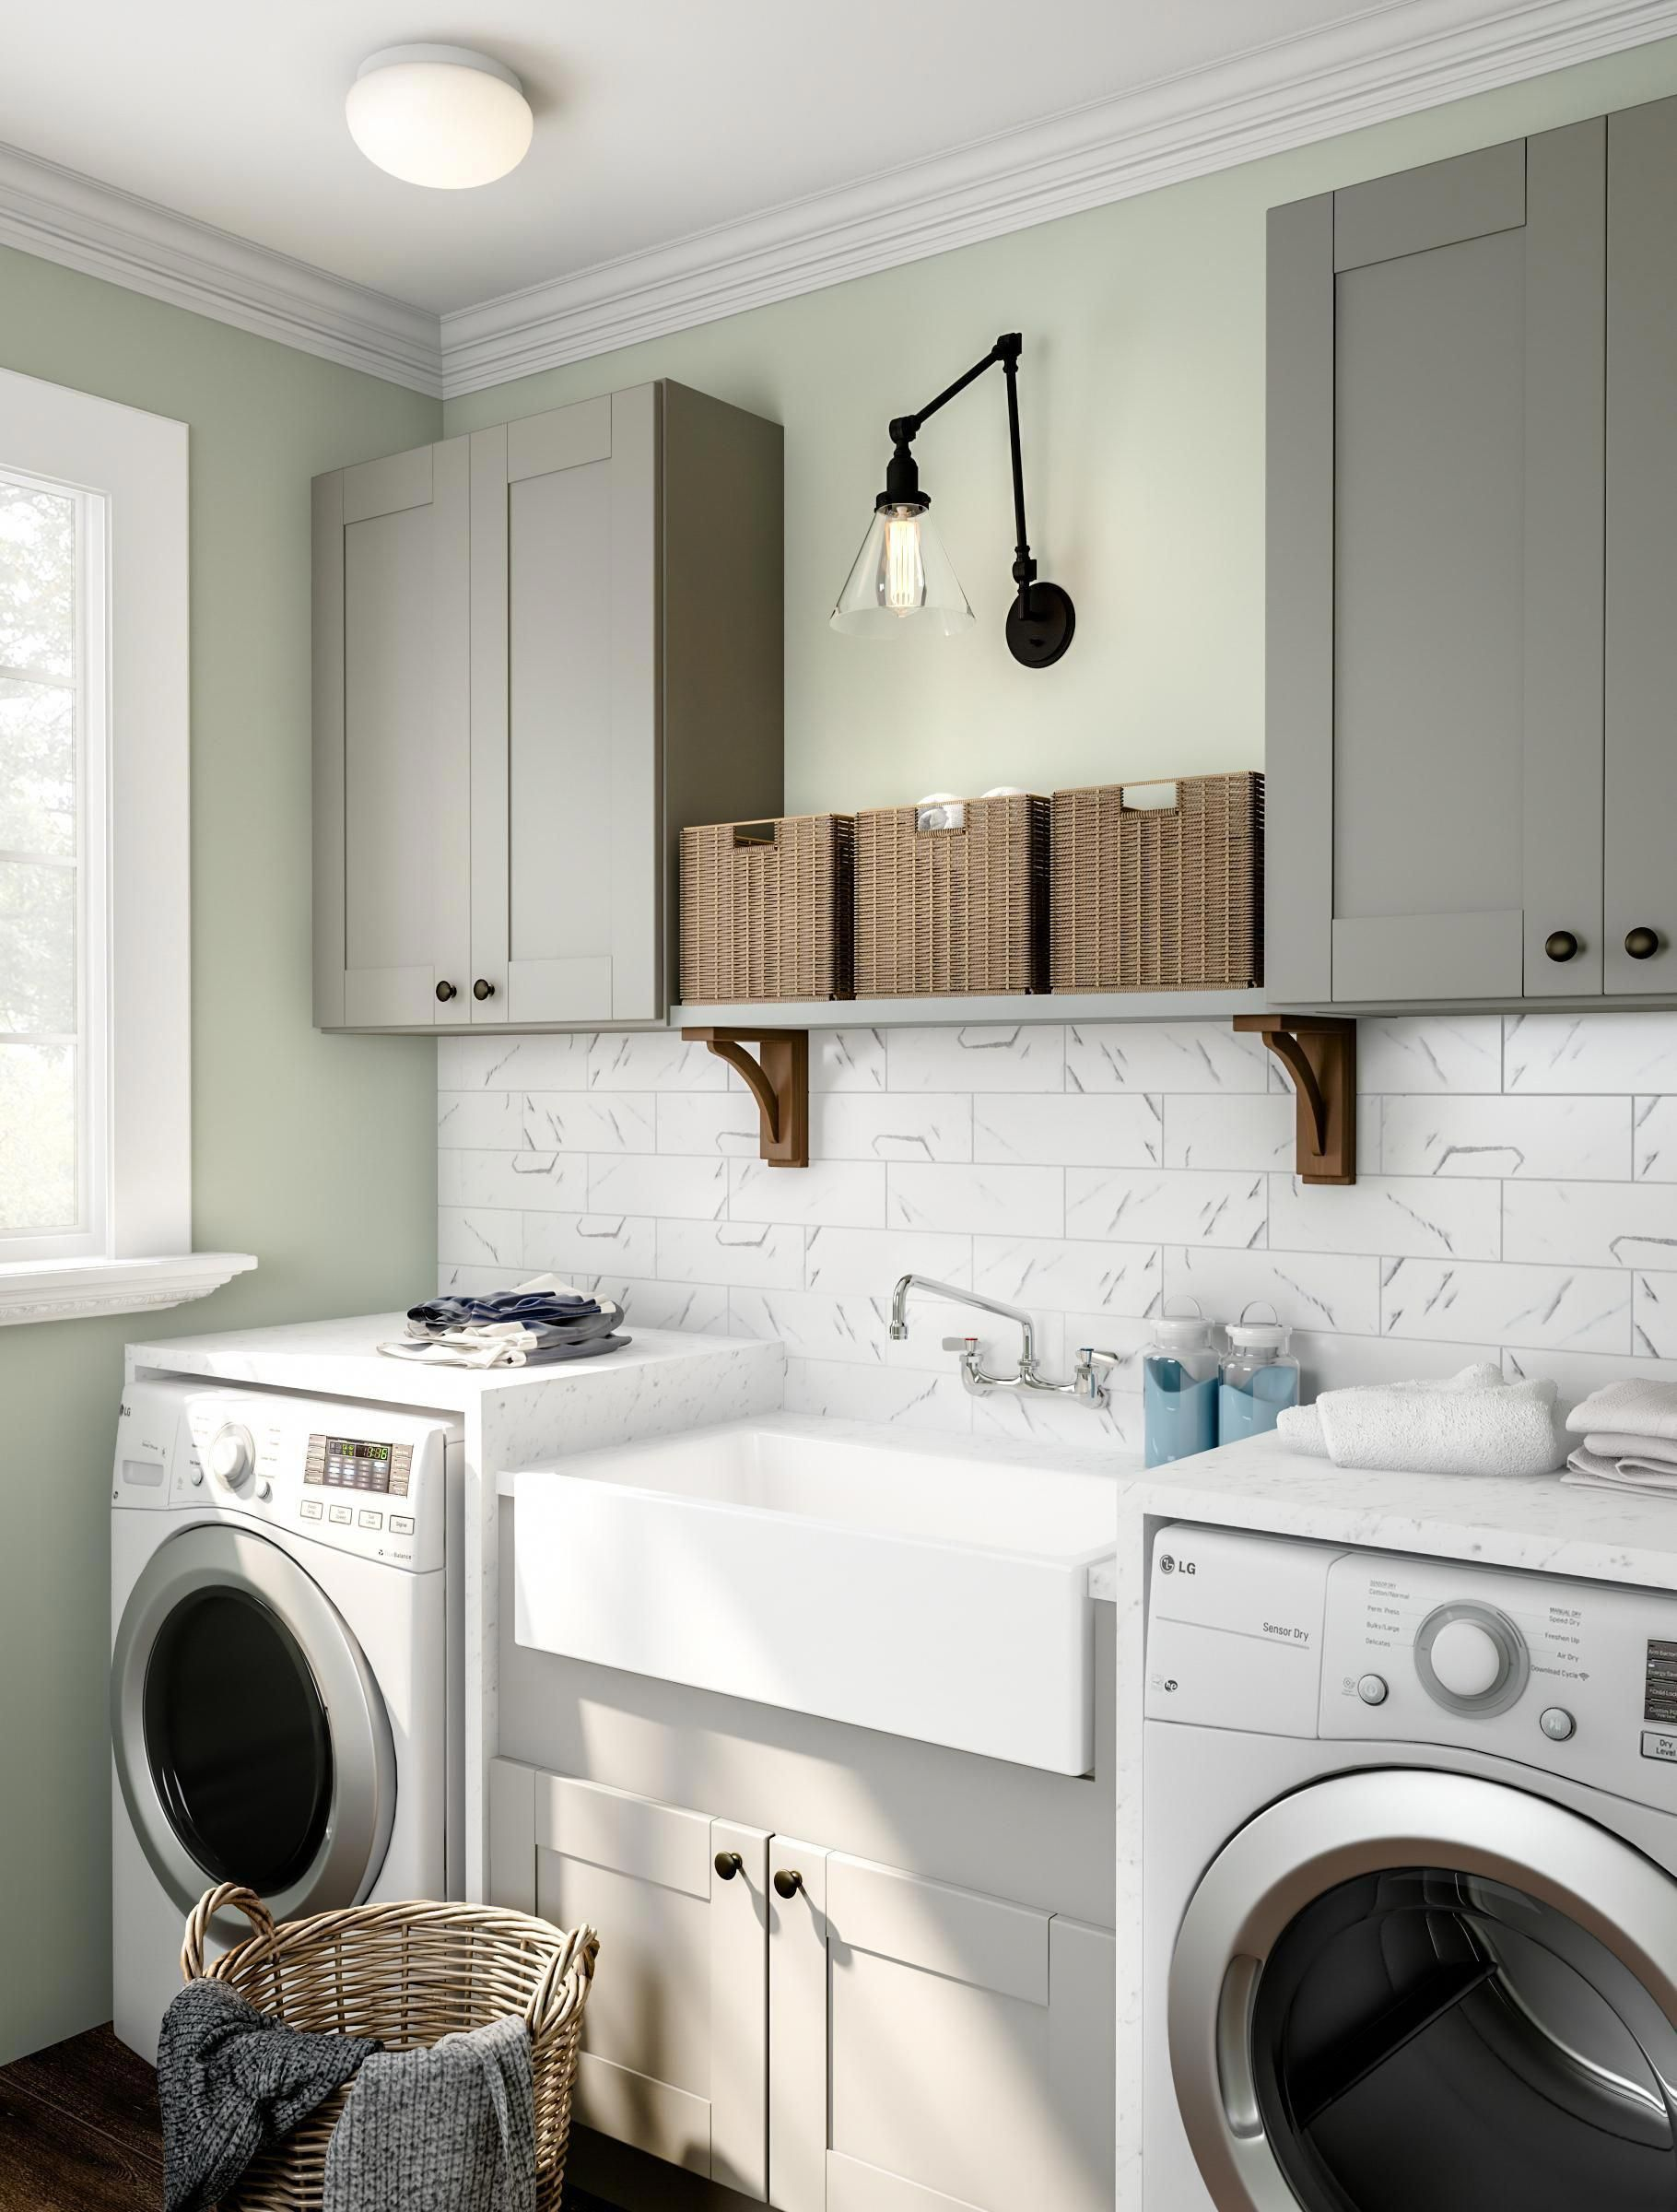 Invest In Smart Appliances For Your Next Laundry Update Home